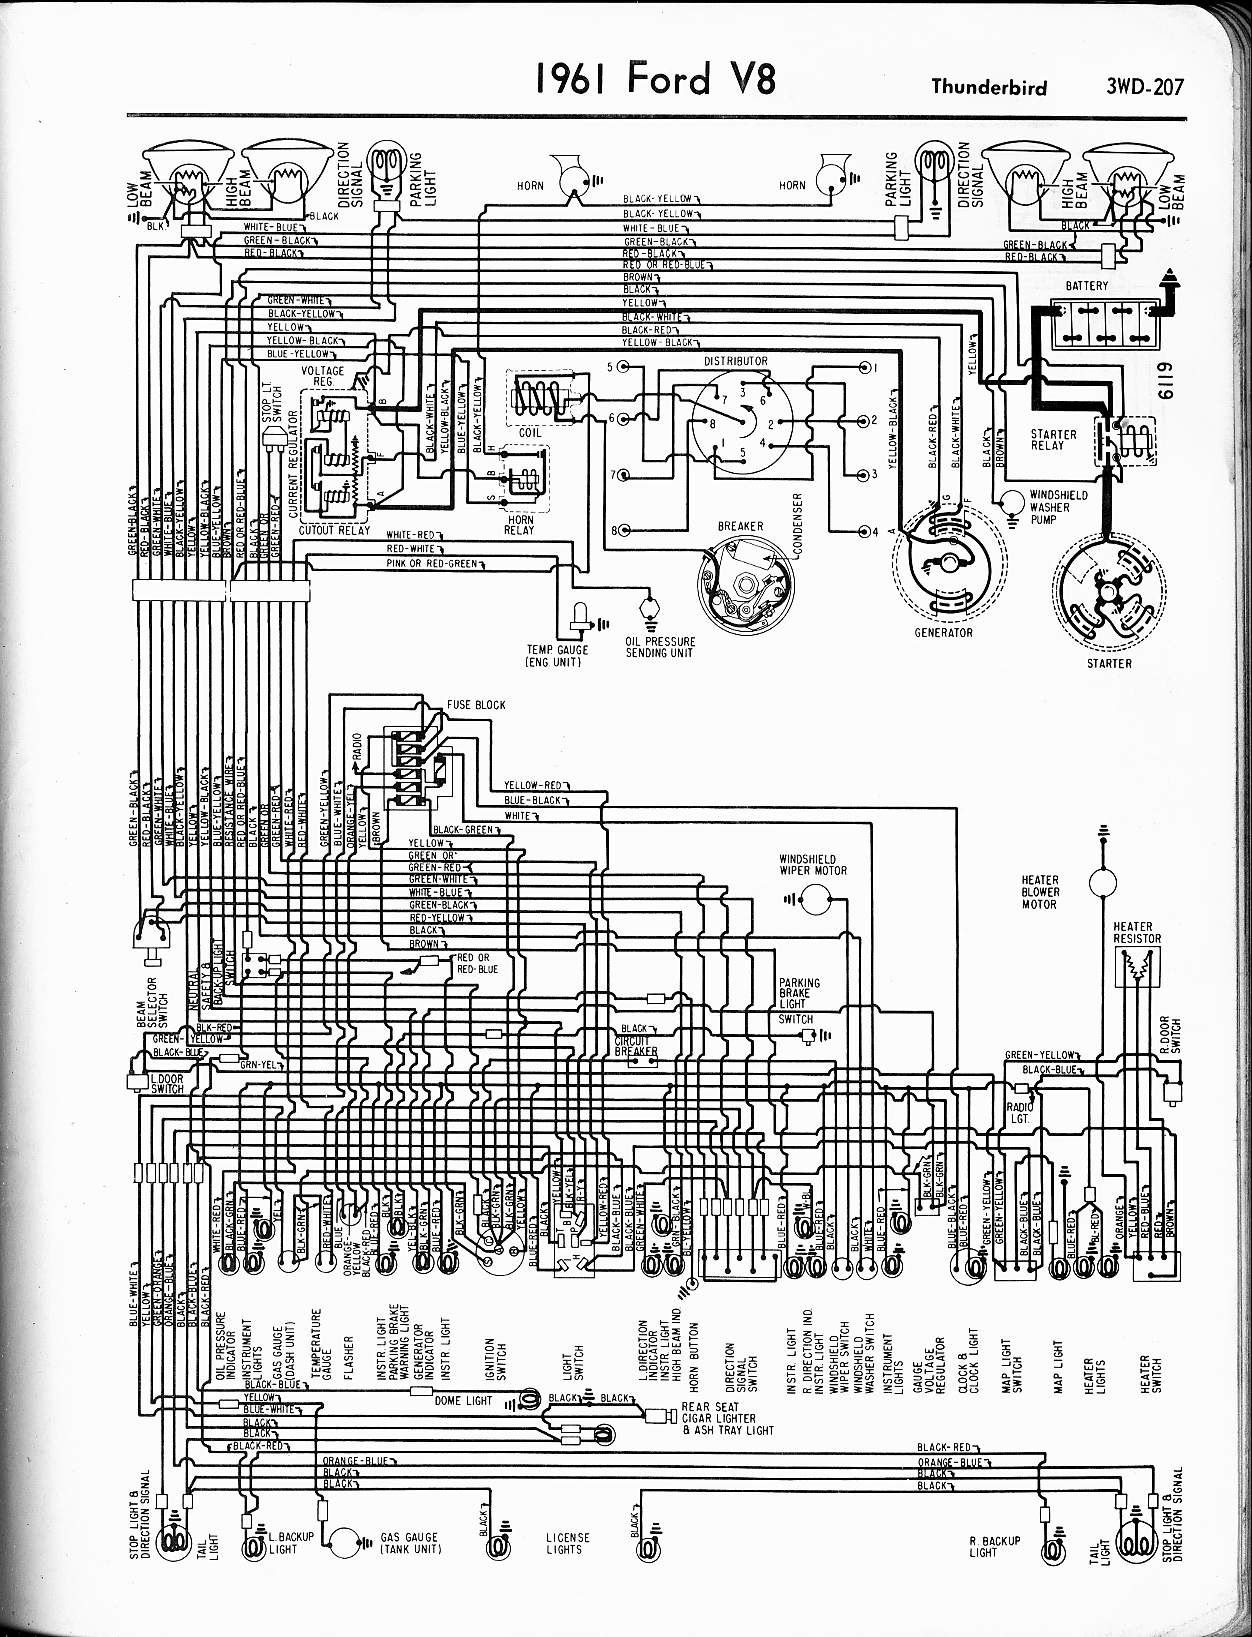 Excellent 57 65 Ford Wiring Diagrams Wiring Cloud Cosmuggs Outletorg